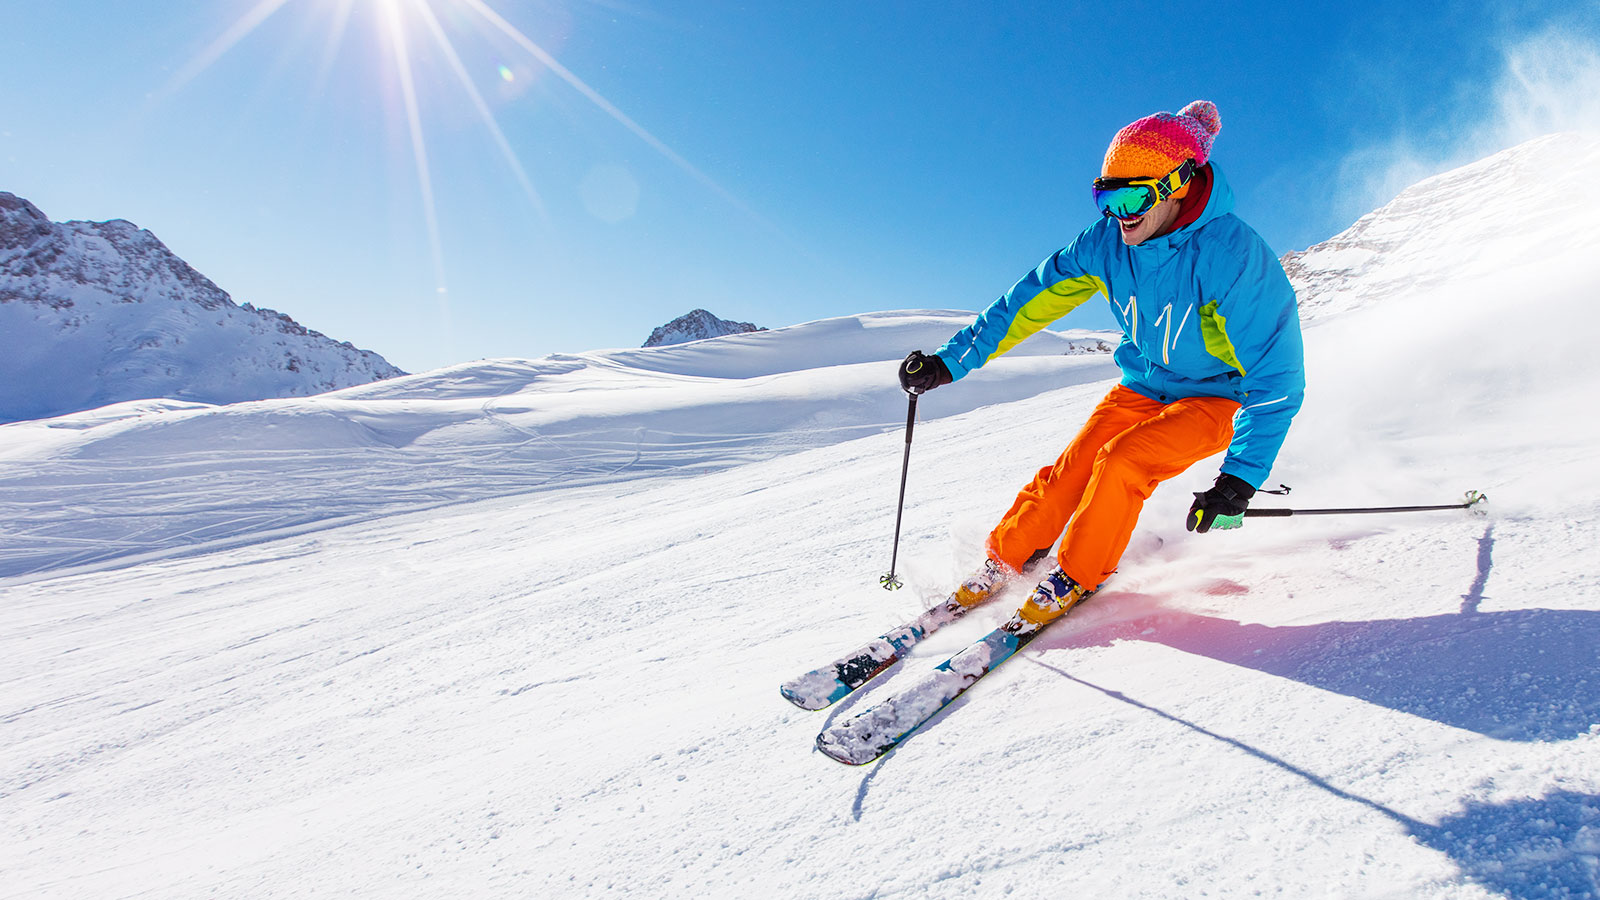 This dream job wants to pay you to ski at some of the world's top mountains